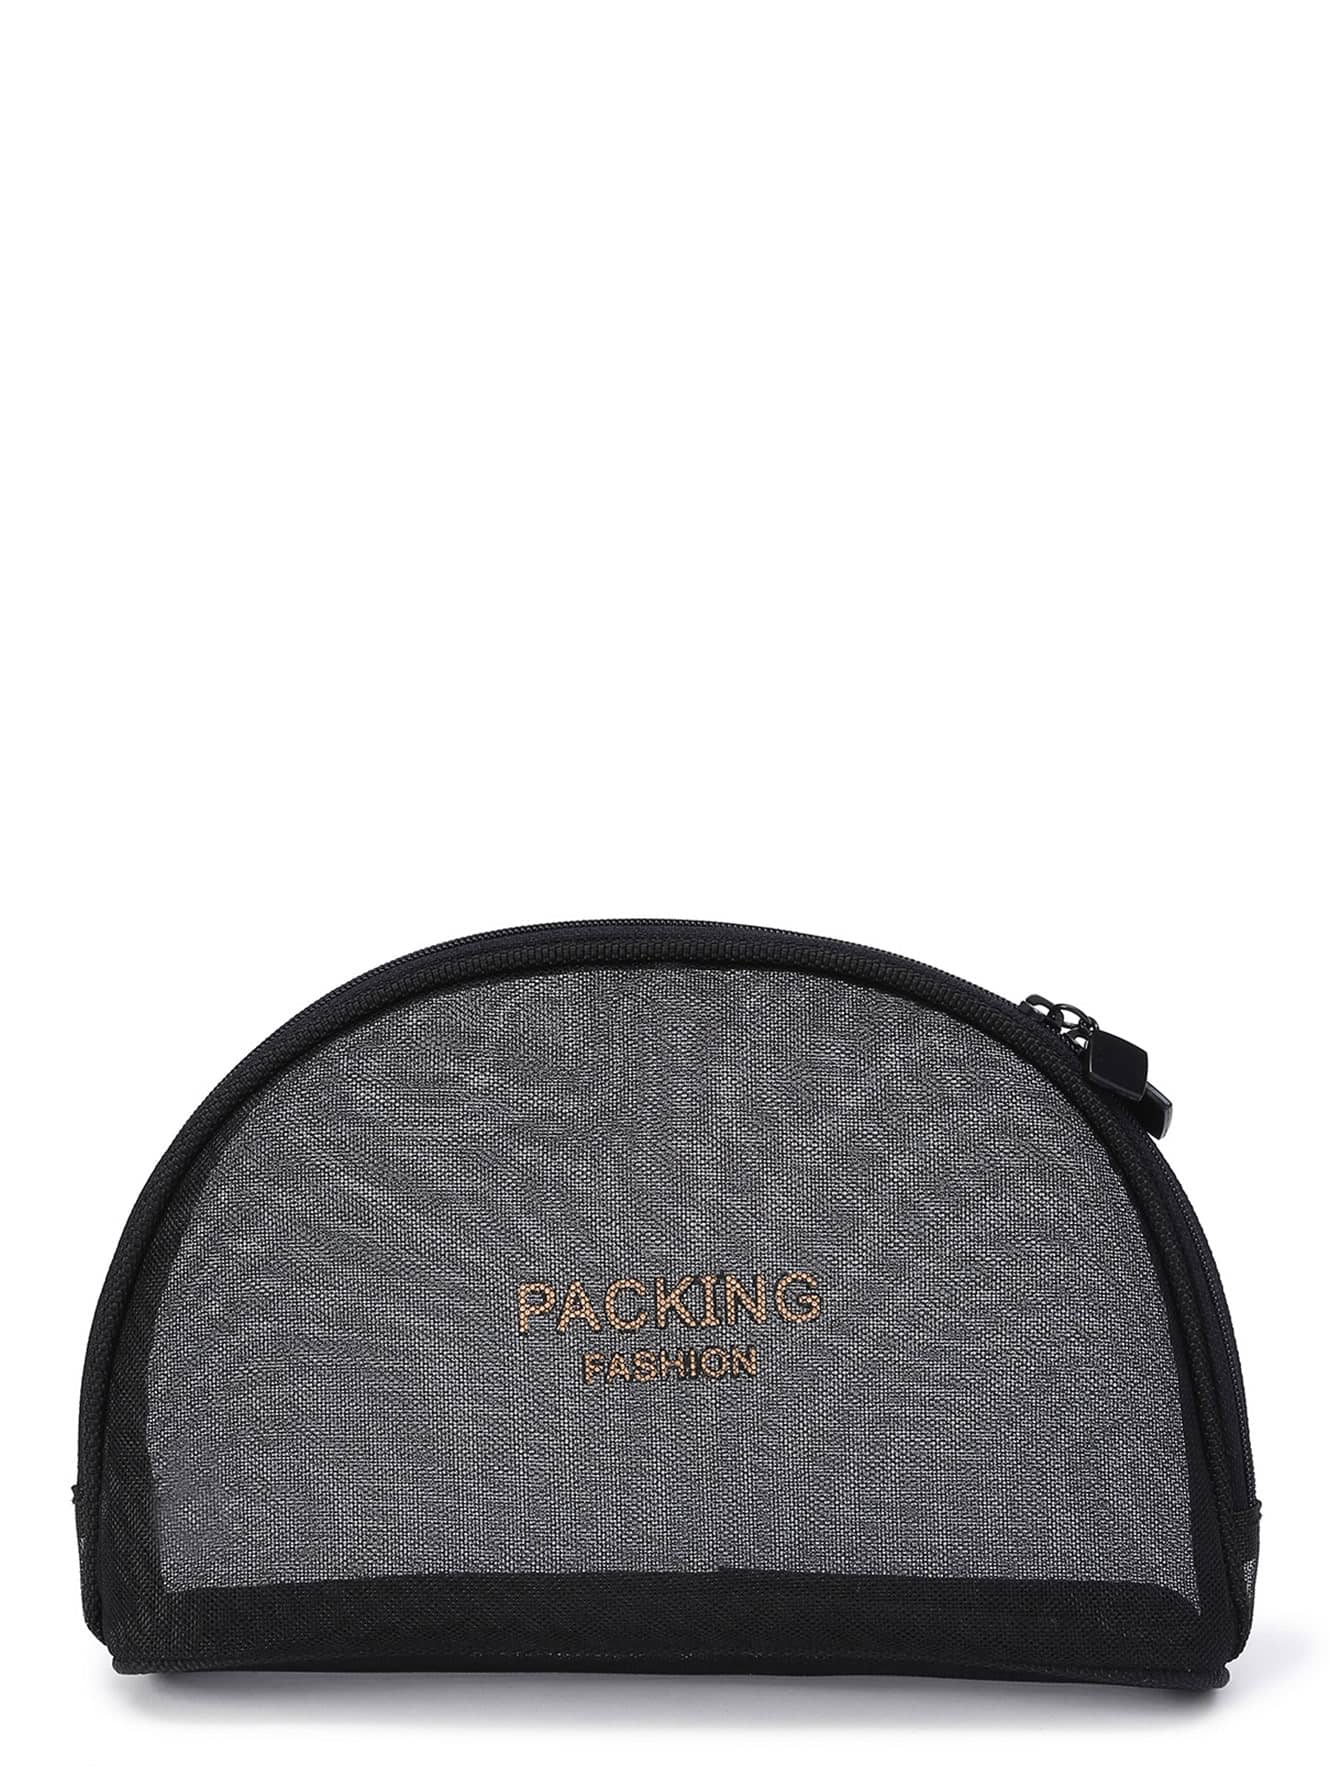 Mesh Design Makeup Bag